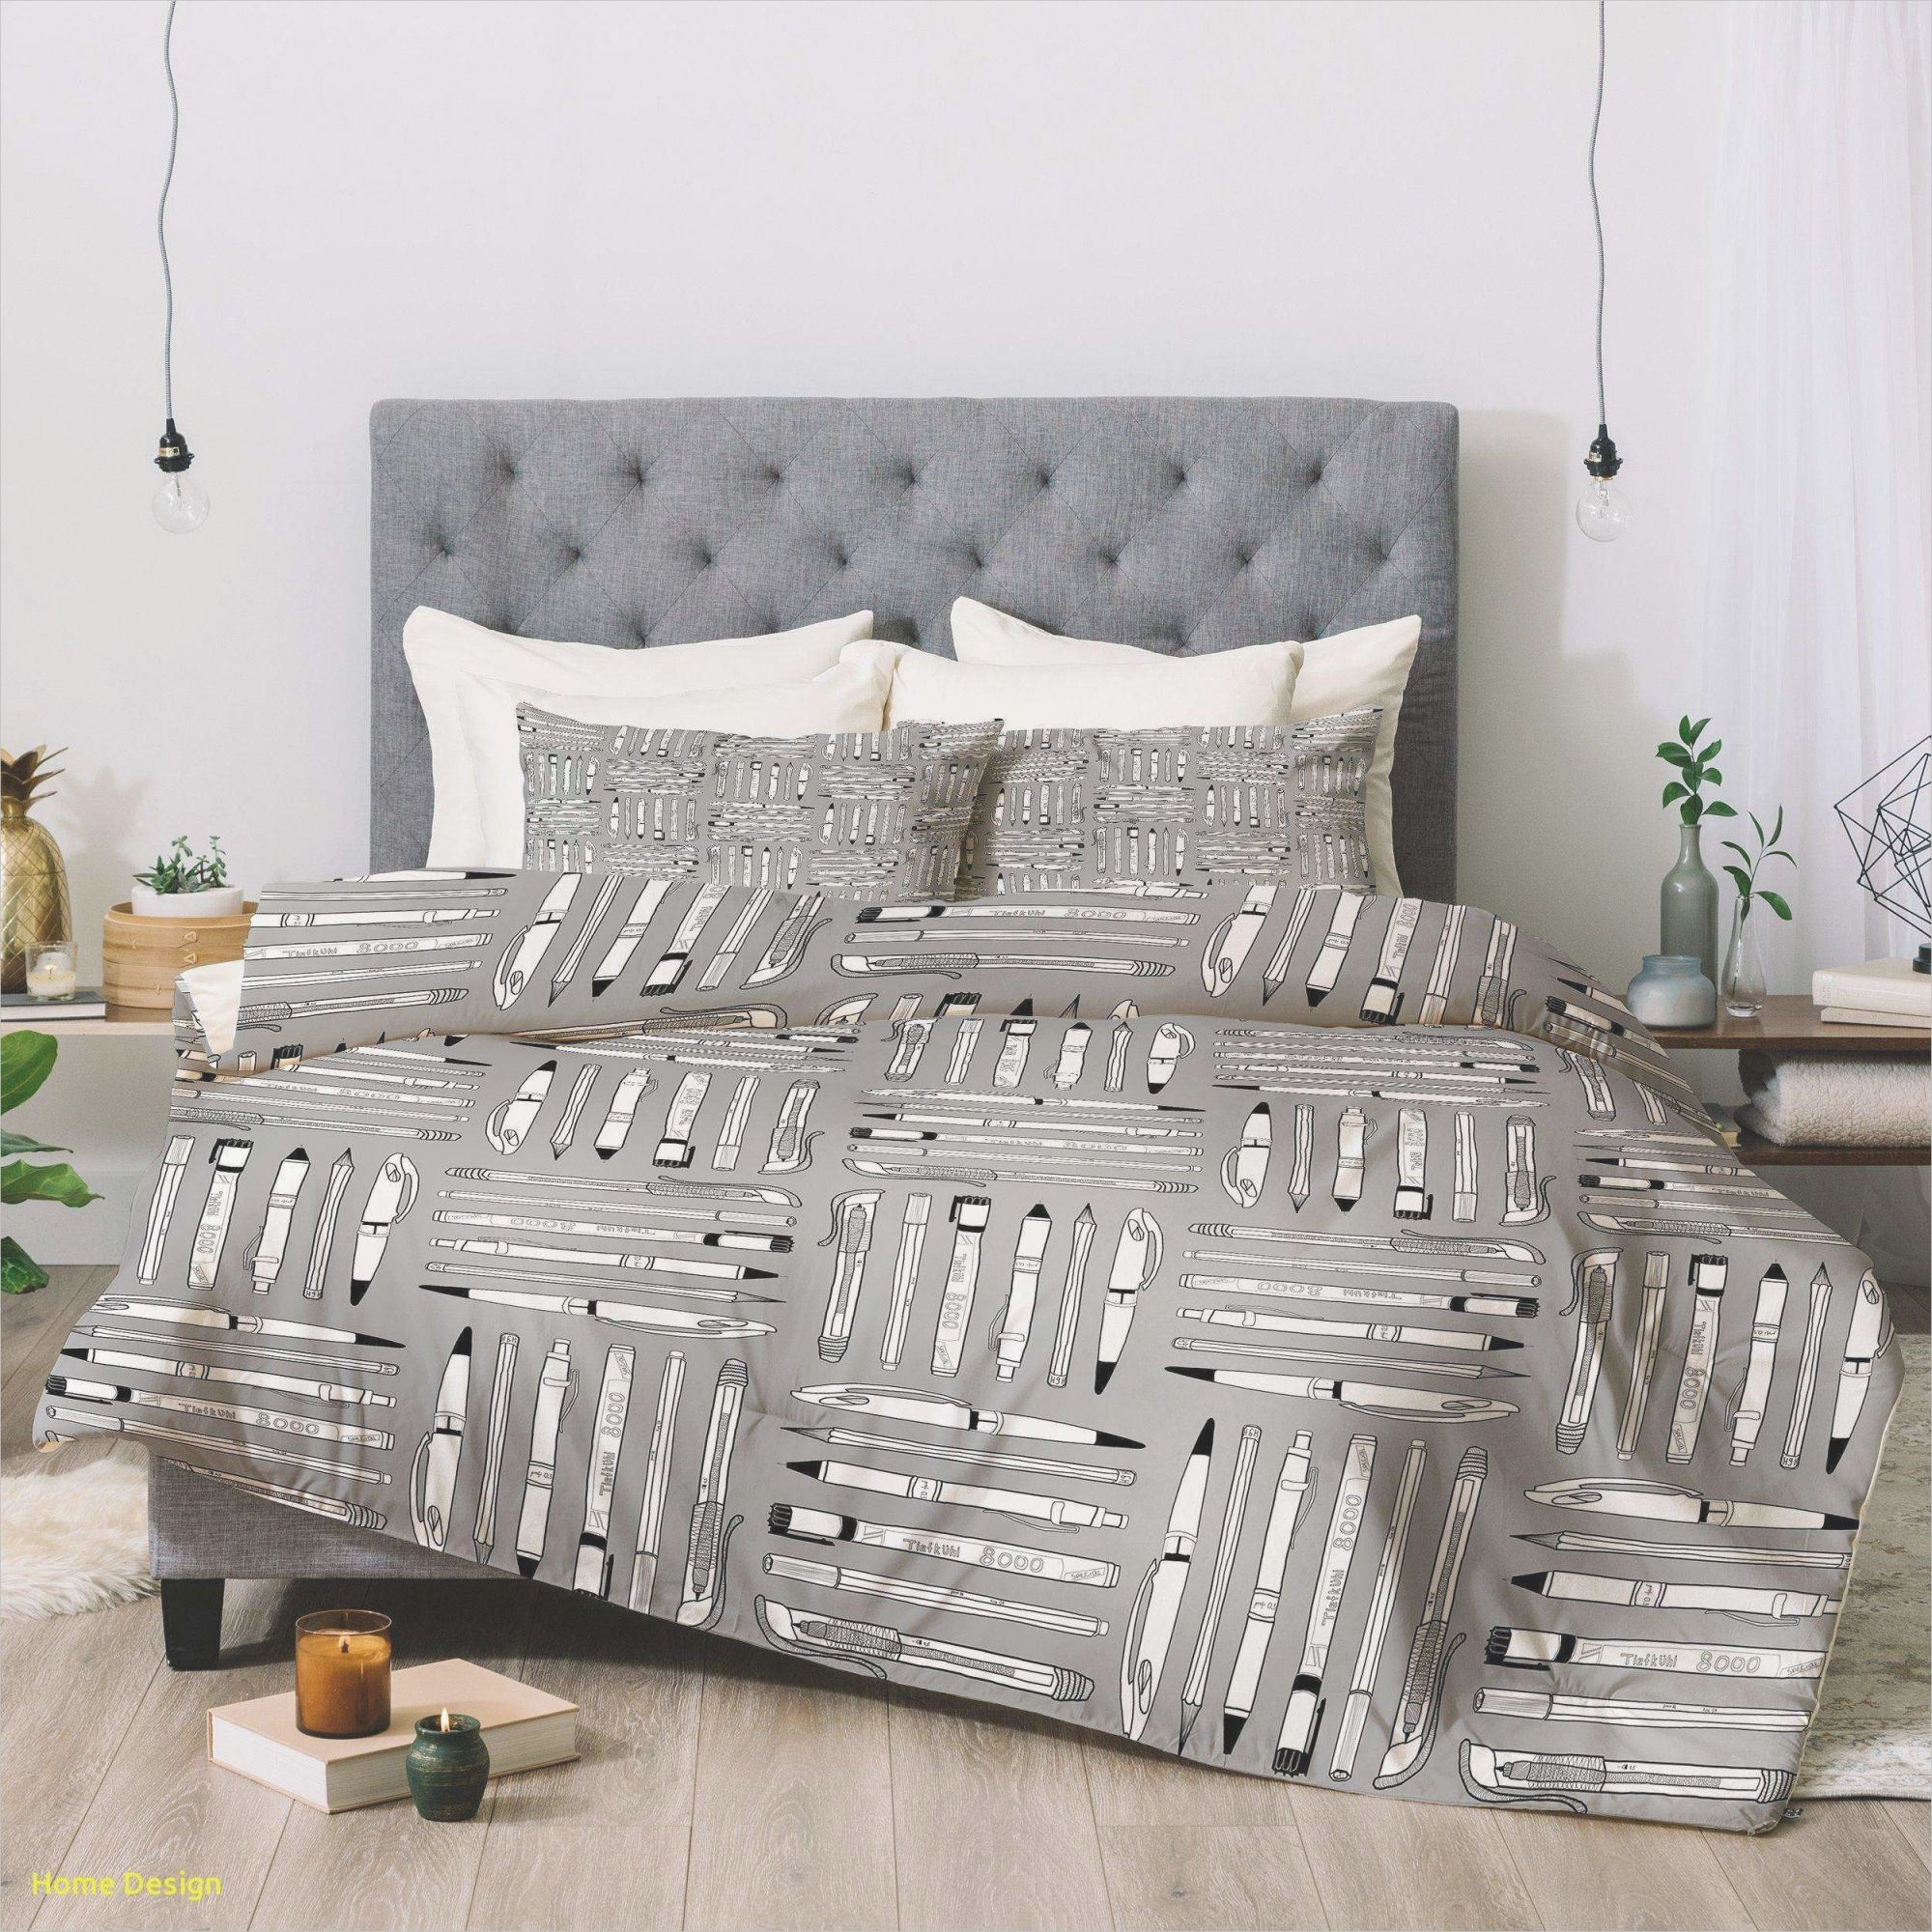 Bedroom Decor Grey And Purple And White Color – Bedroom for Bedroom Decorating Ideas Grey And White